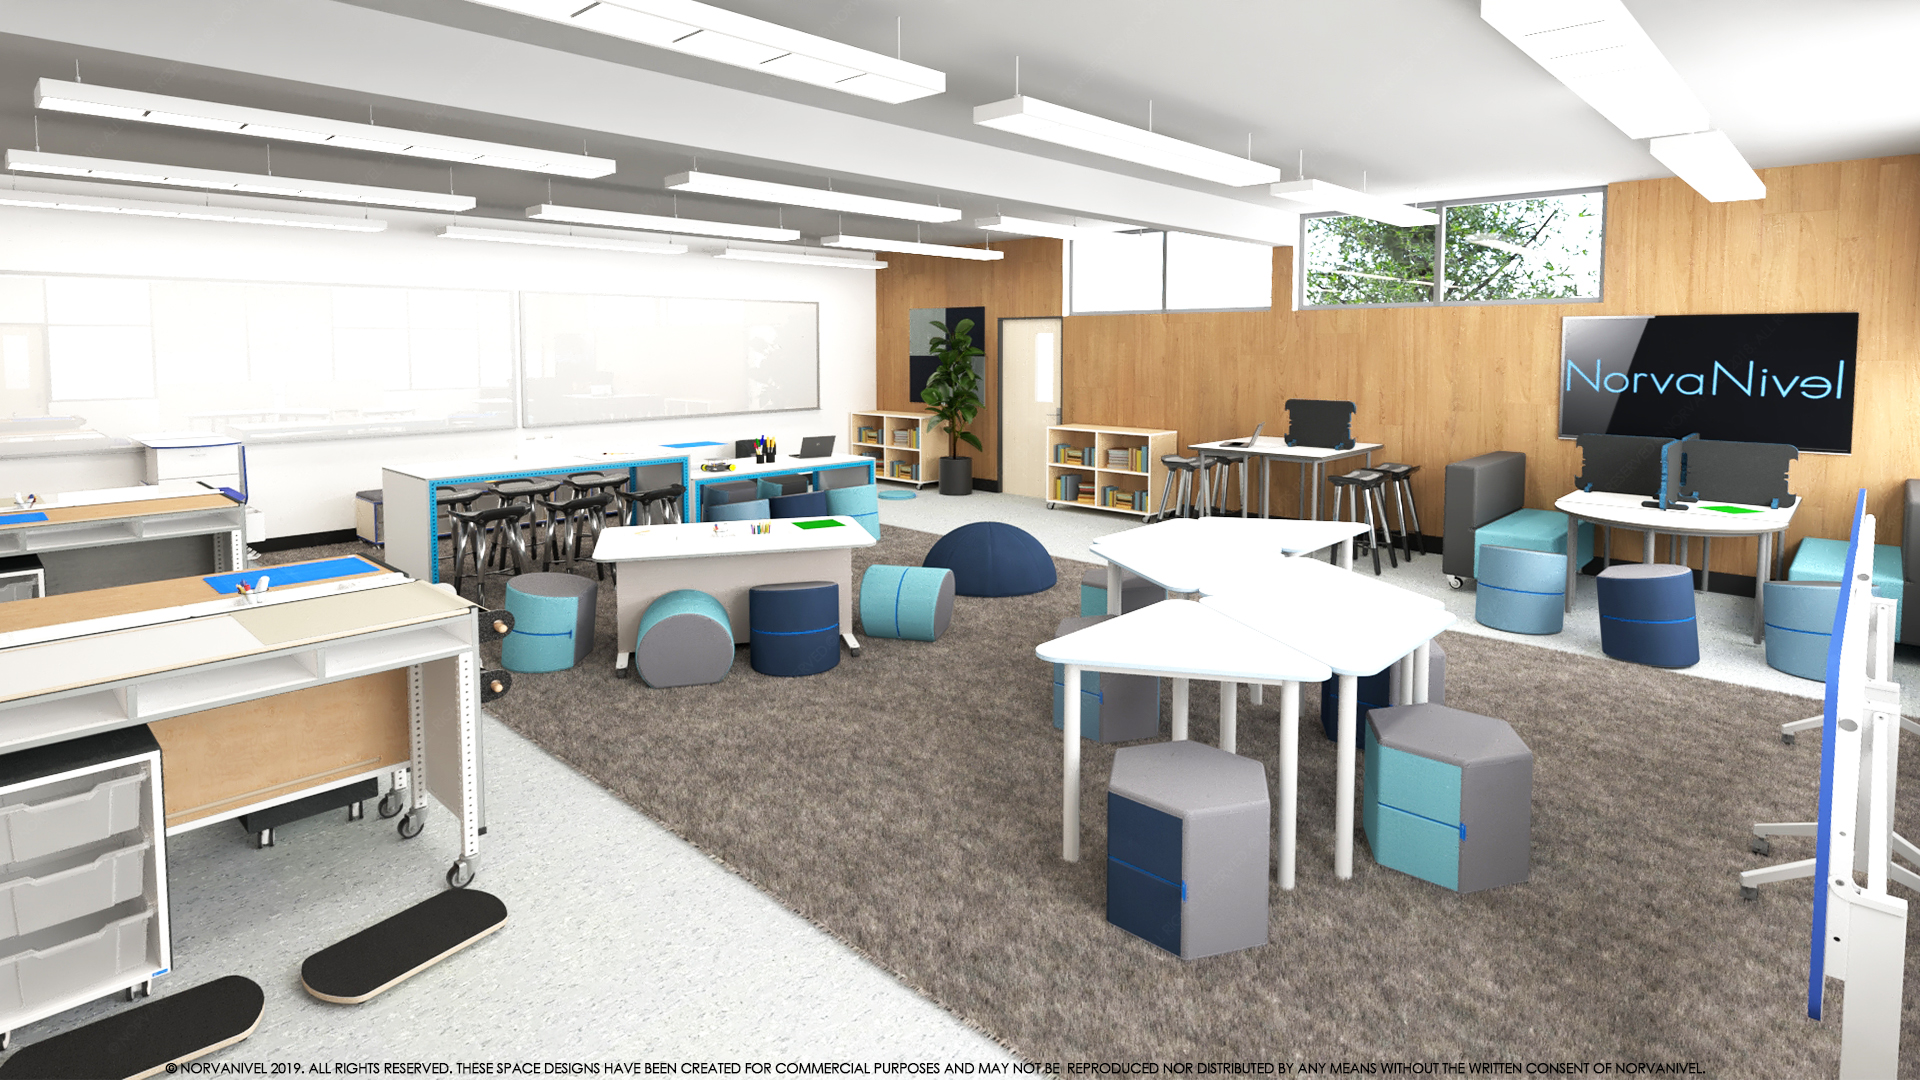 New STEAM lab at El Camino School features flexible seating, interactive computer technology, digital media production equipment, lighting and software for video editing and design.